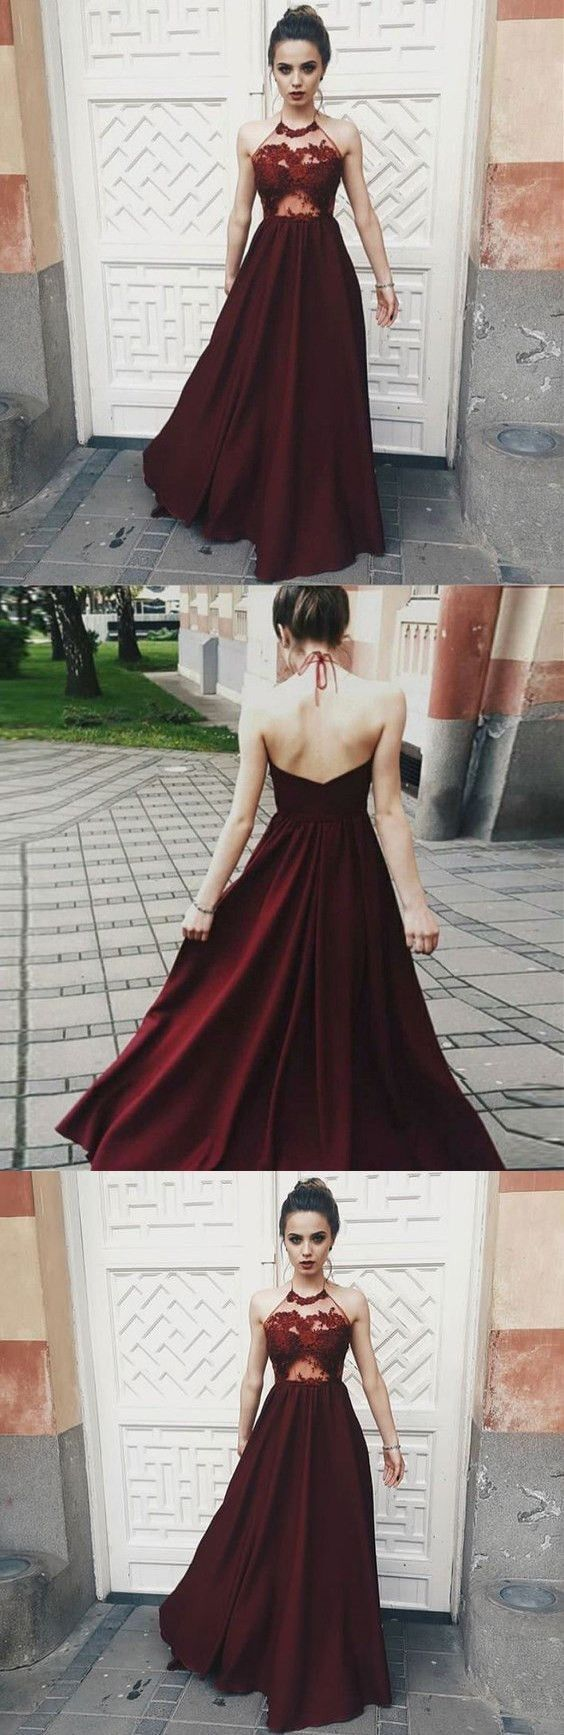 2018 Prom Dress, prom dresses long,prom dresses modest,prom dresses boho,prom dresses burgundy,prom dresses cheap,prom dresses halter,beautiful prom dresses,prom dresses 2018,prom dresses elegant,prom dresses a line #amyprom #longpromdress #fashion #love #party #formal